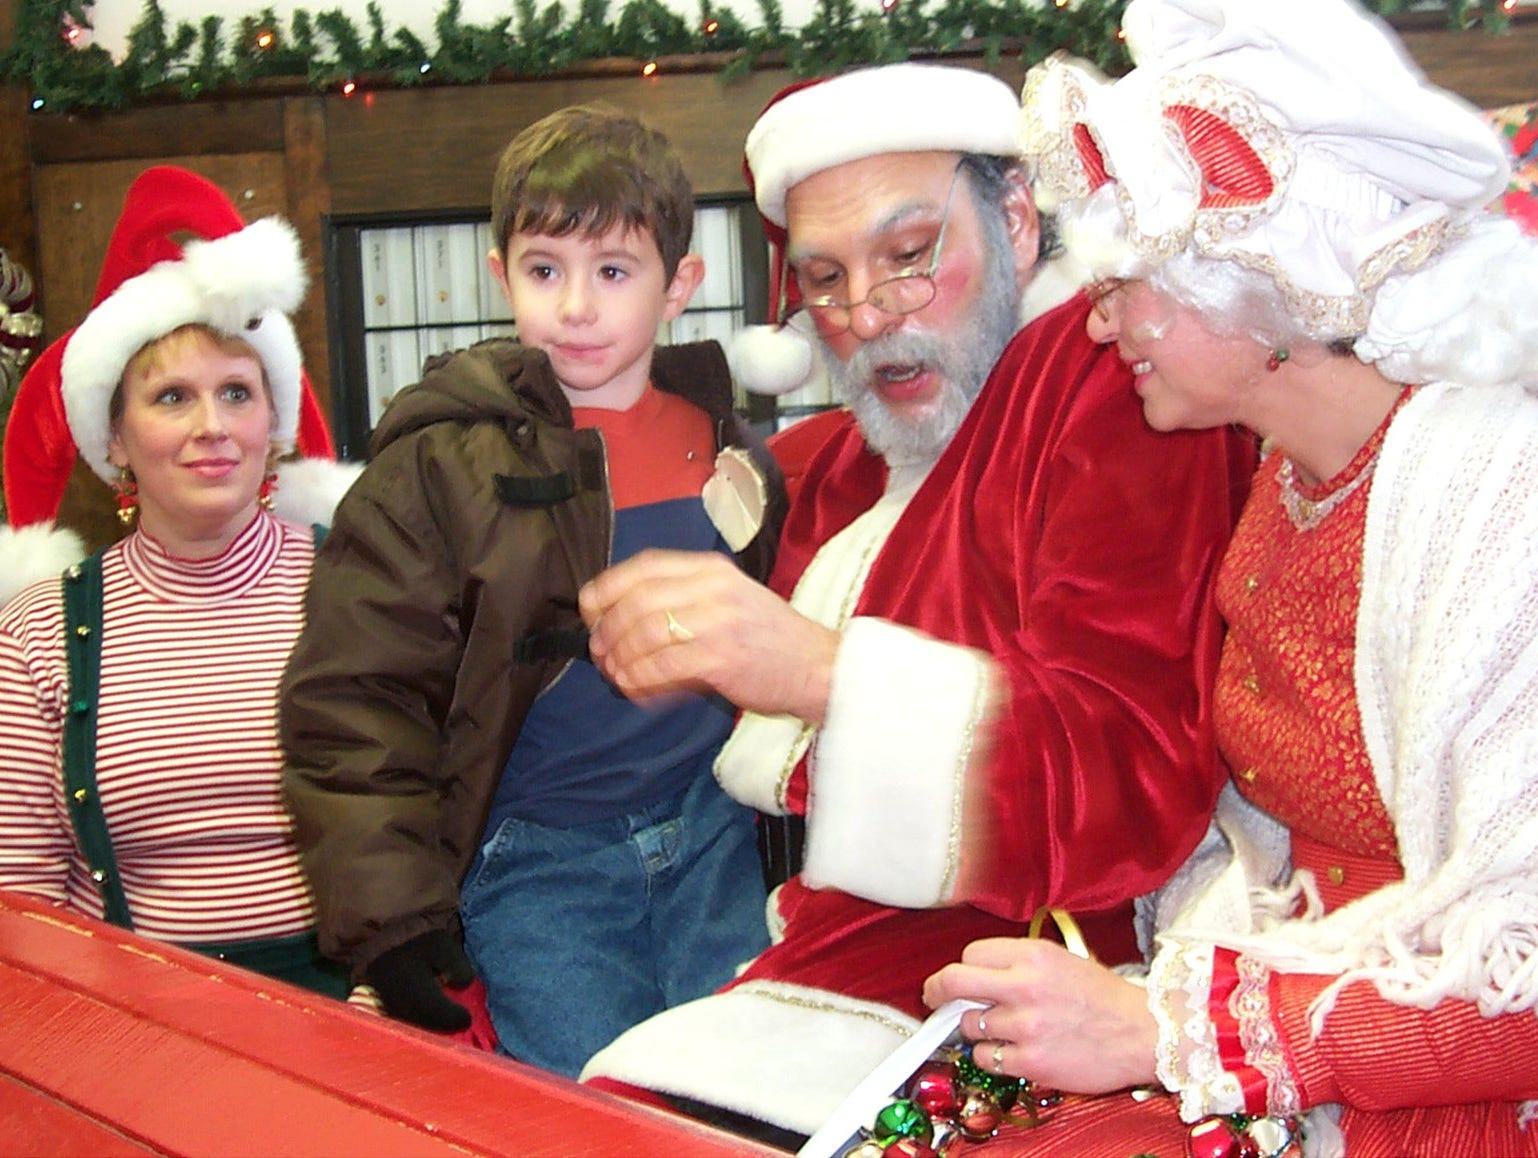 11.12.2002, 1A: Greyson Perkowski, 5, a kindergarten student at Calvin U. Smith Elementary School in Corning, talks with Santa, Mrs. Claus and helper Snowflake at the Christmas event at Painted Post Post Office.